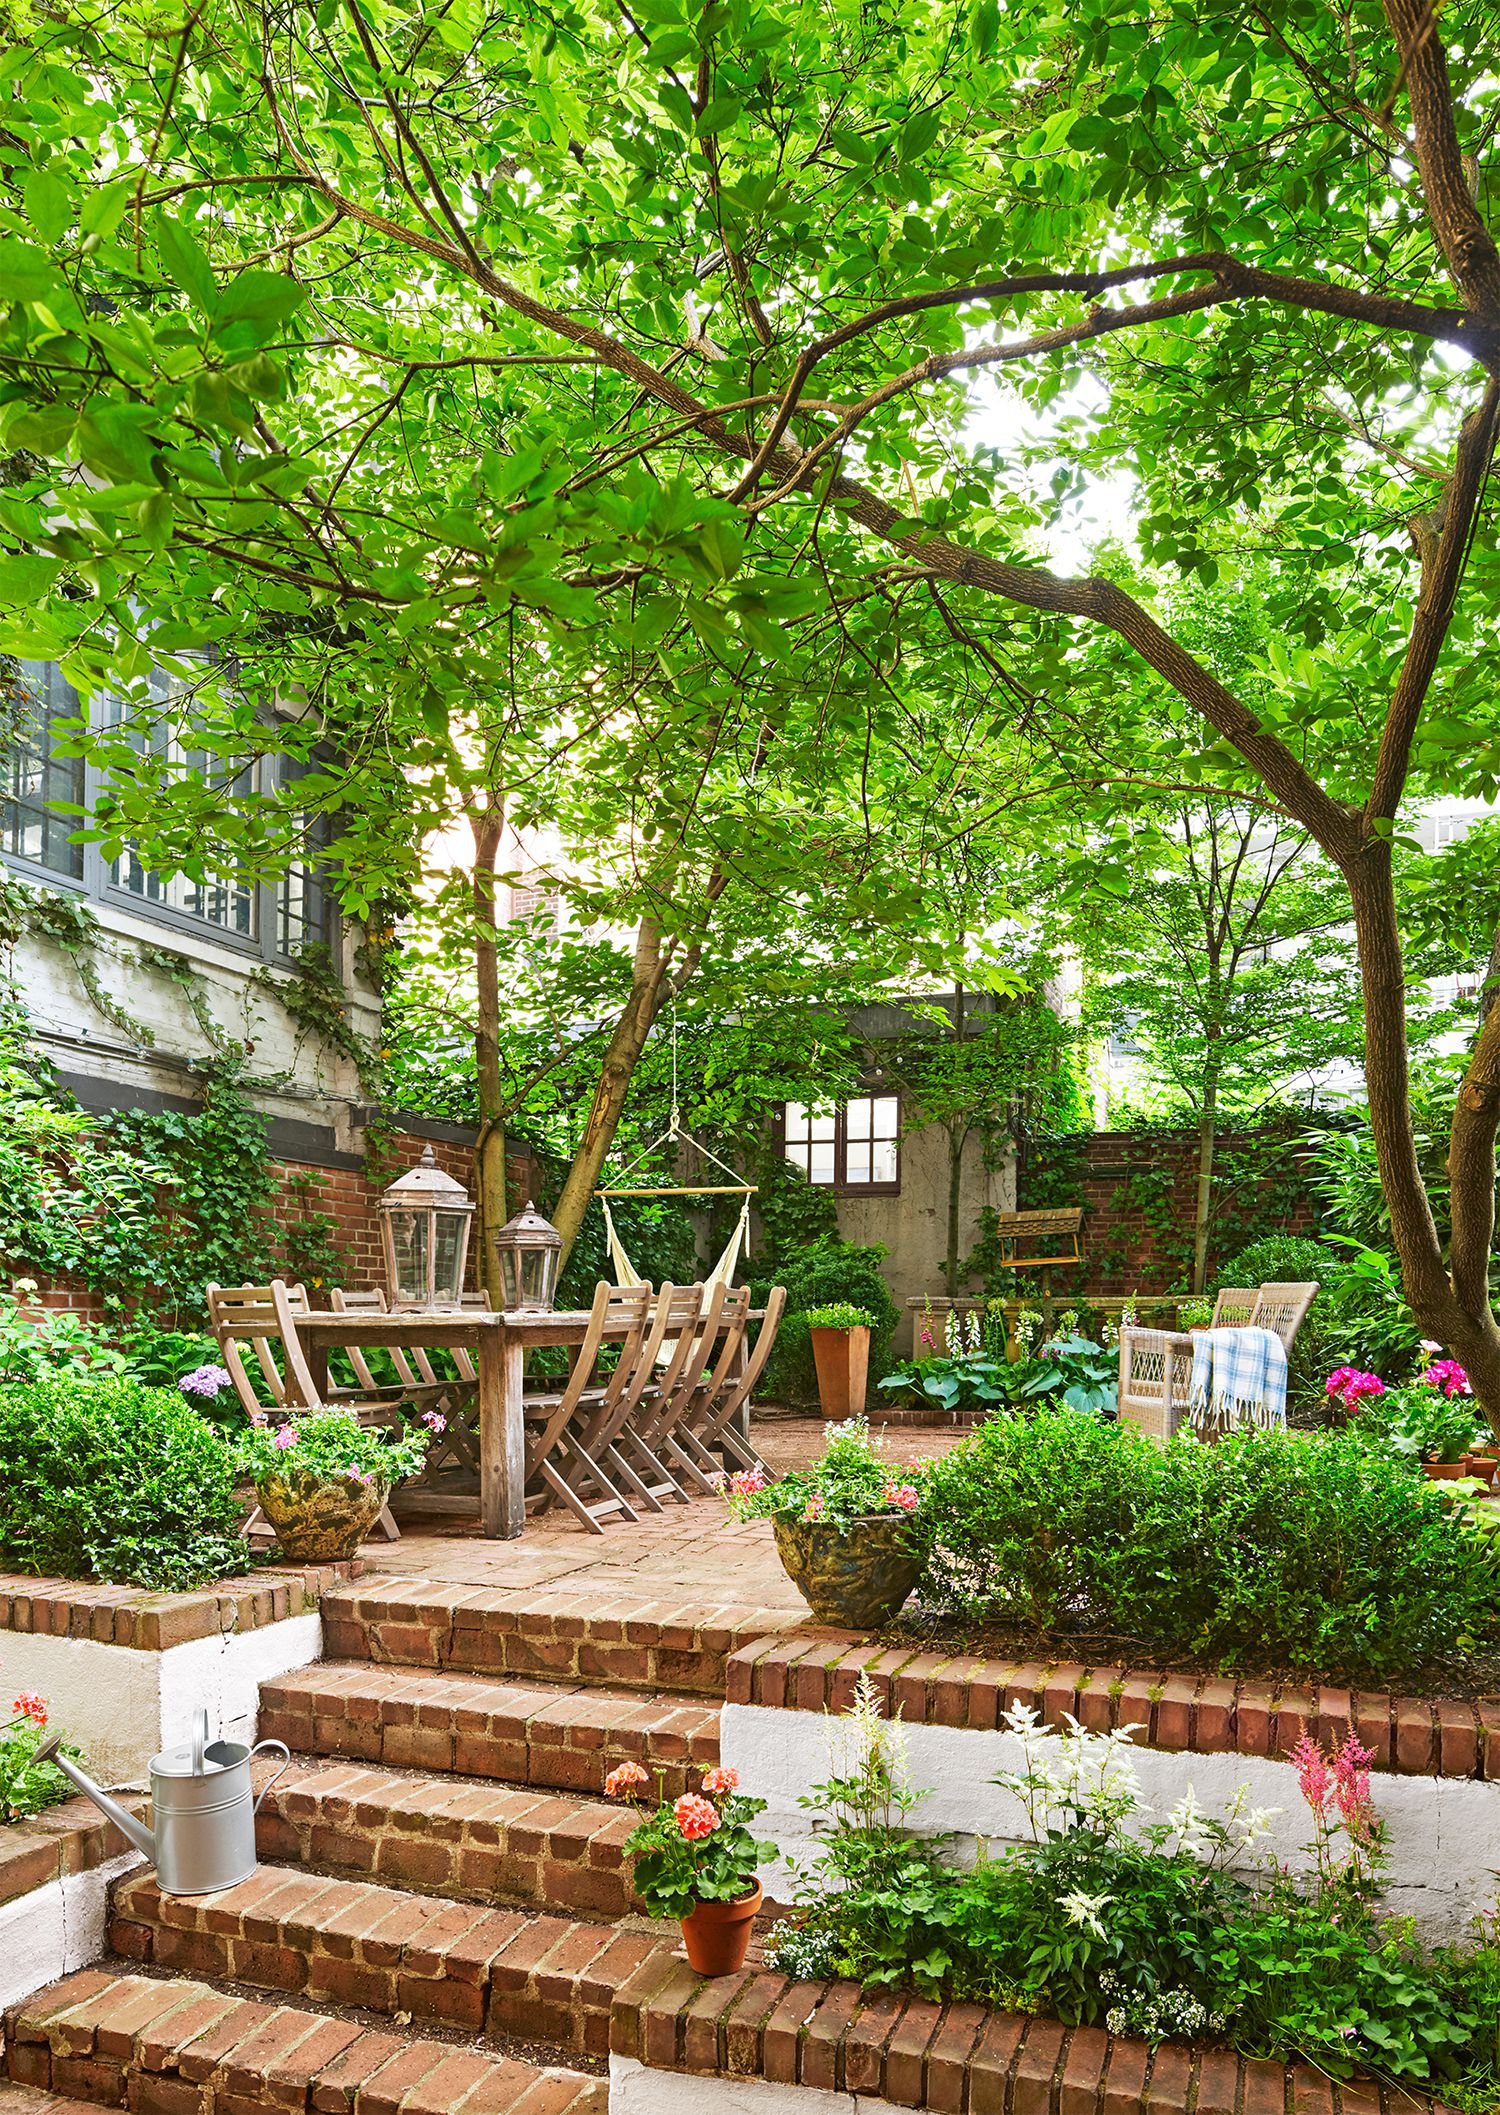 20 Small Backyards Ideas And Decorating Tips Simple Landscaping in Small Backyard Ideas